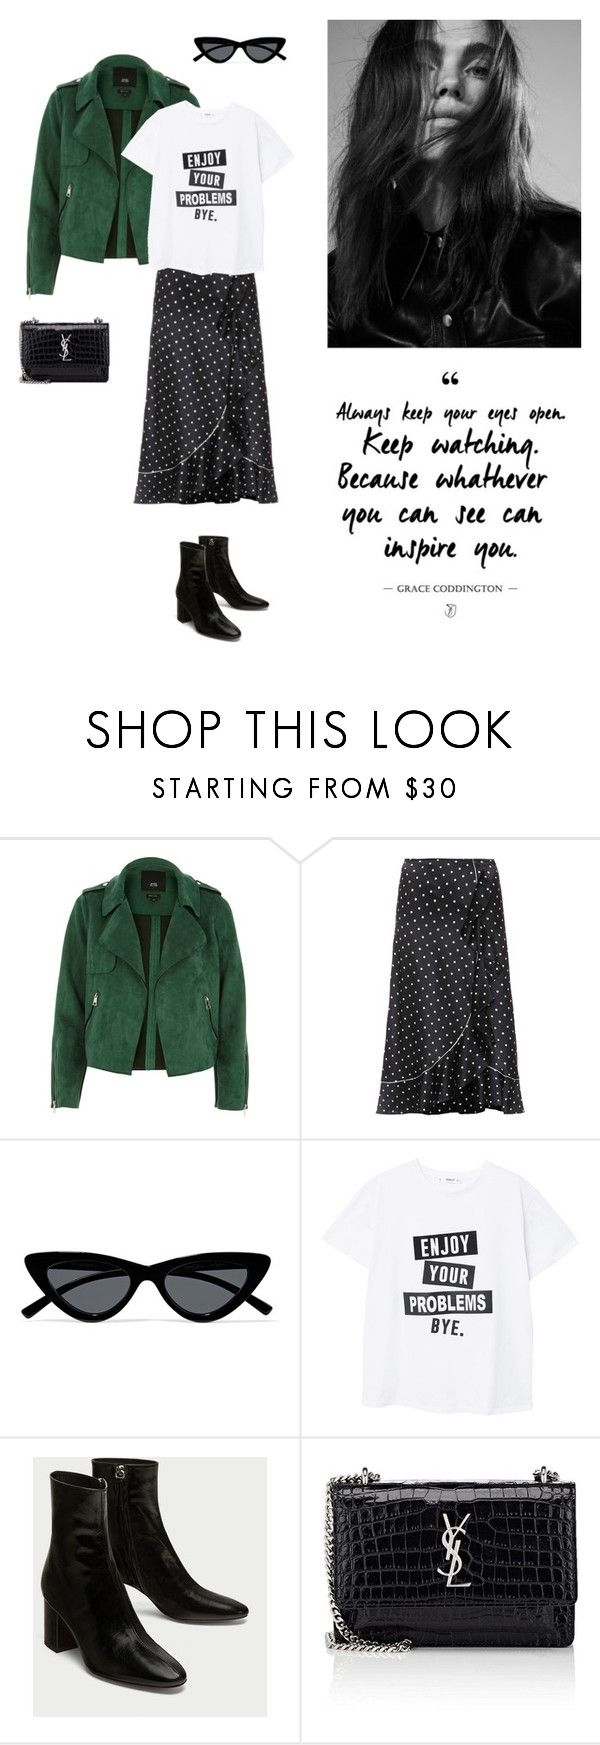 """12/03"" by dorey on Polyvore featuring Ganni, Le Specs, MANGO and Yves Saint Laurent"